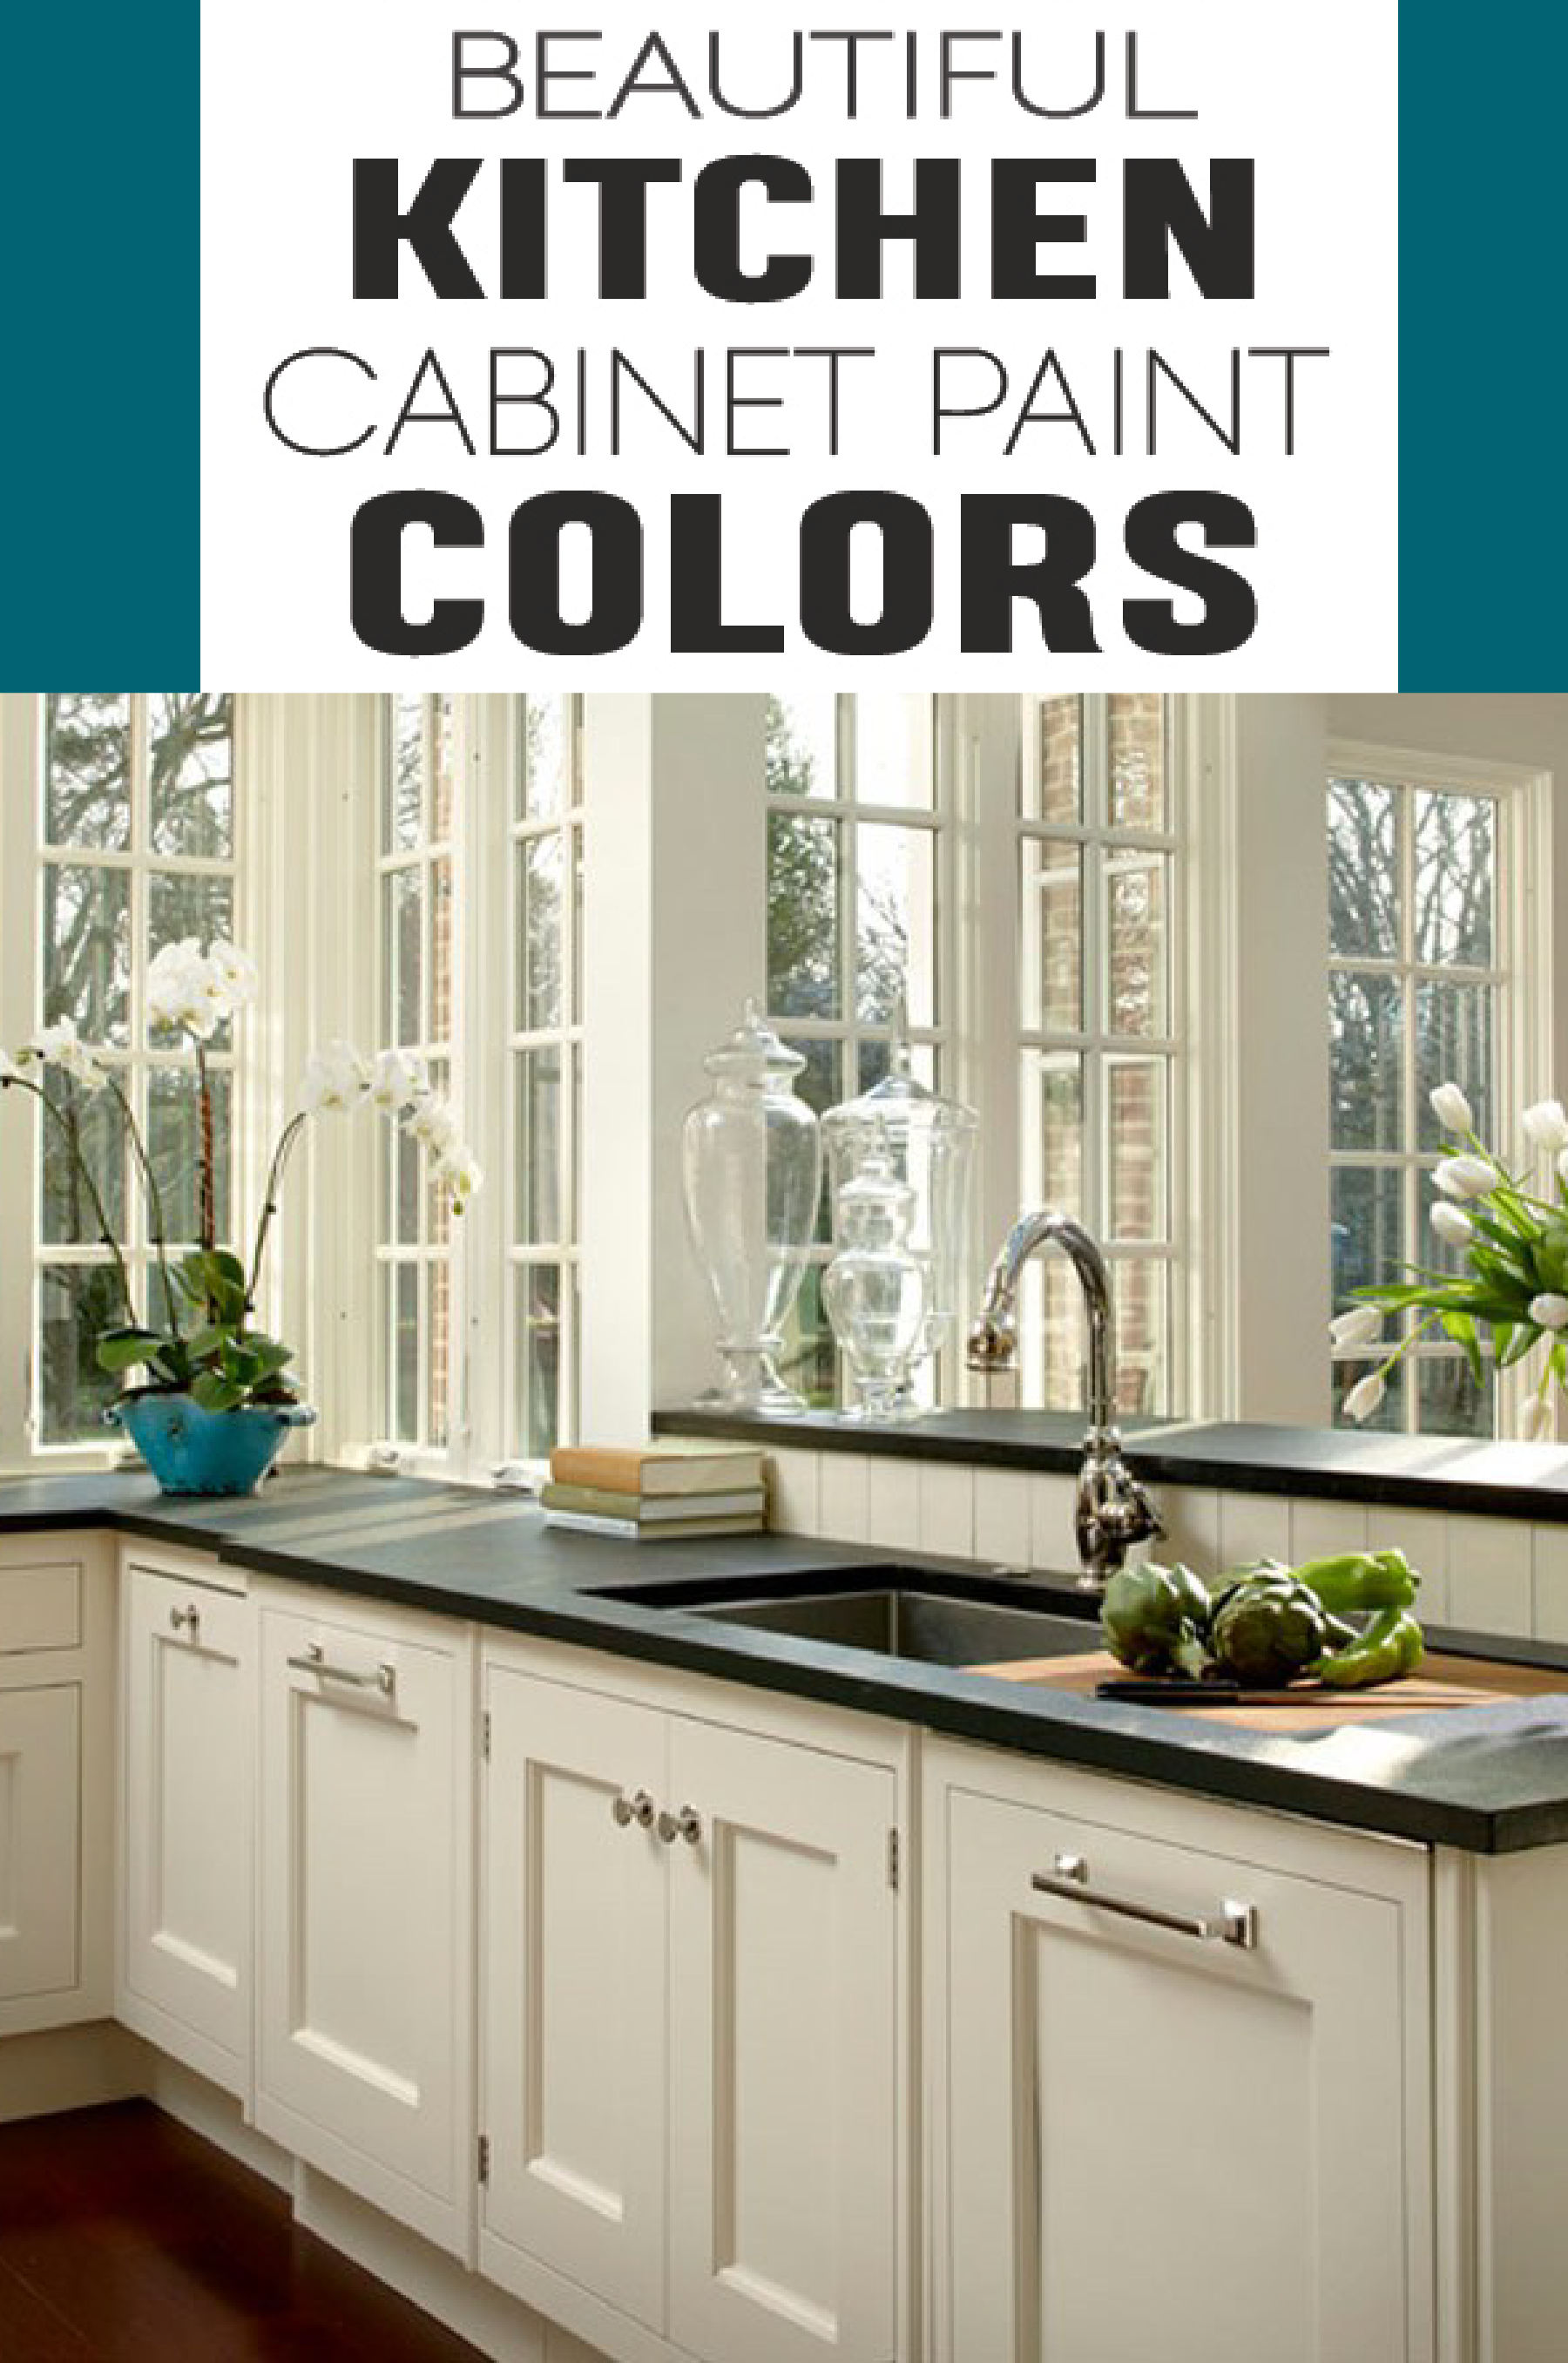 how to pick paint colors for kitchen cabinets painted kitchen and rh pinterest com